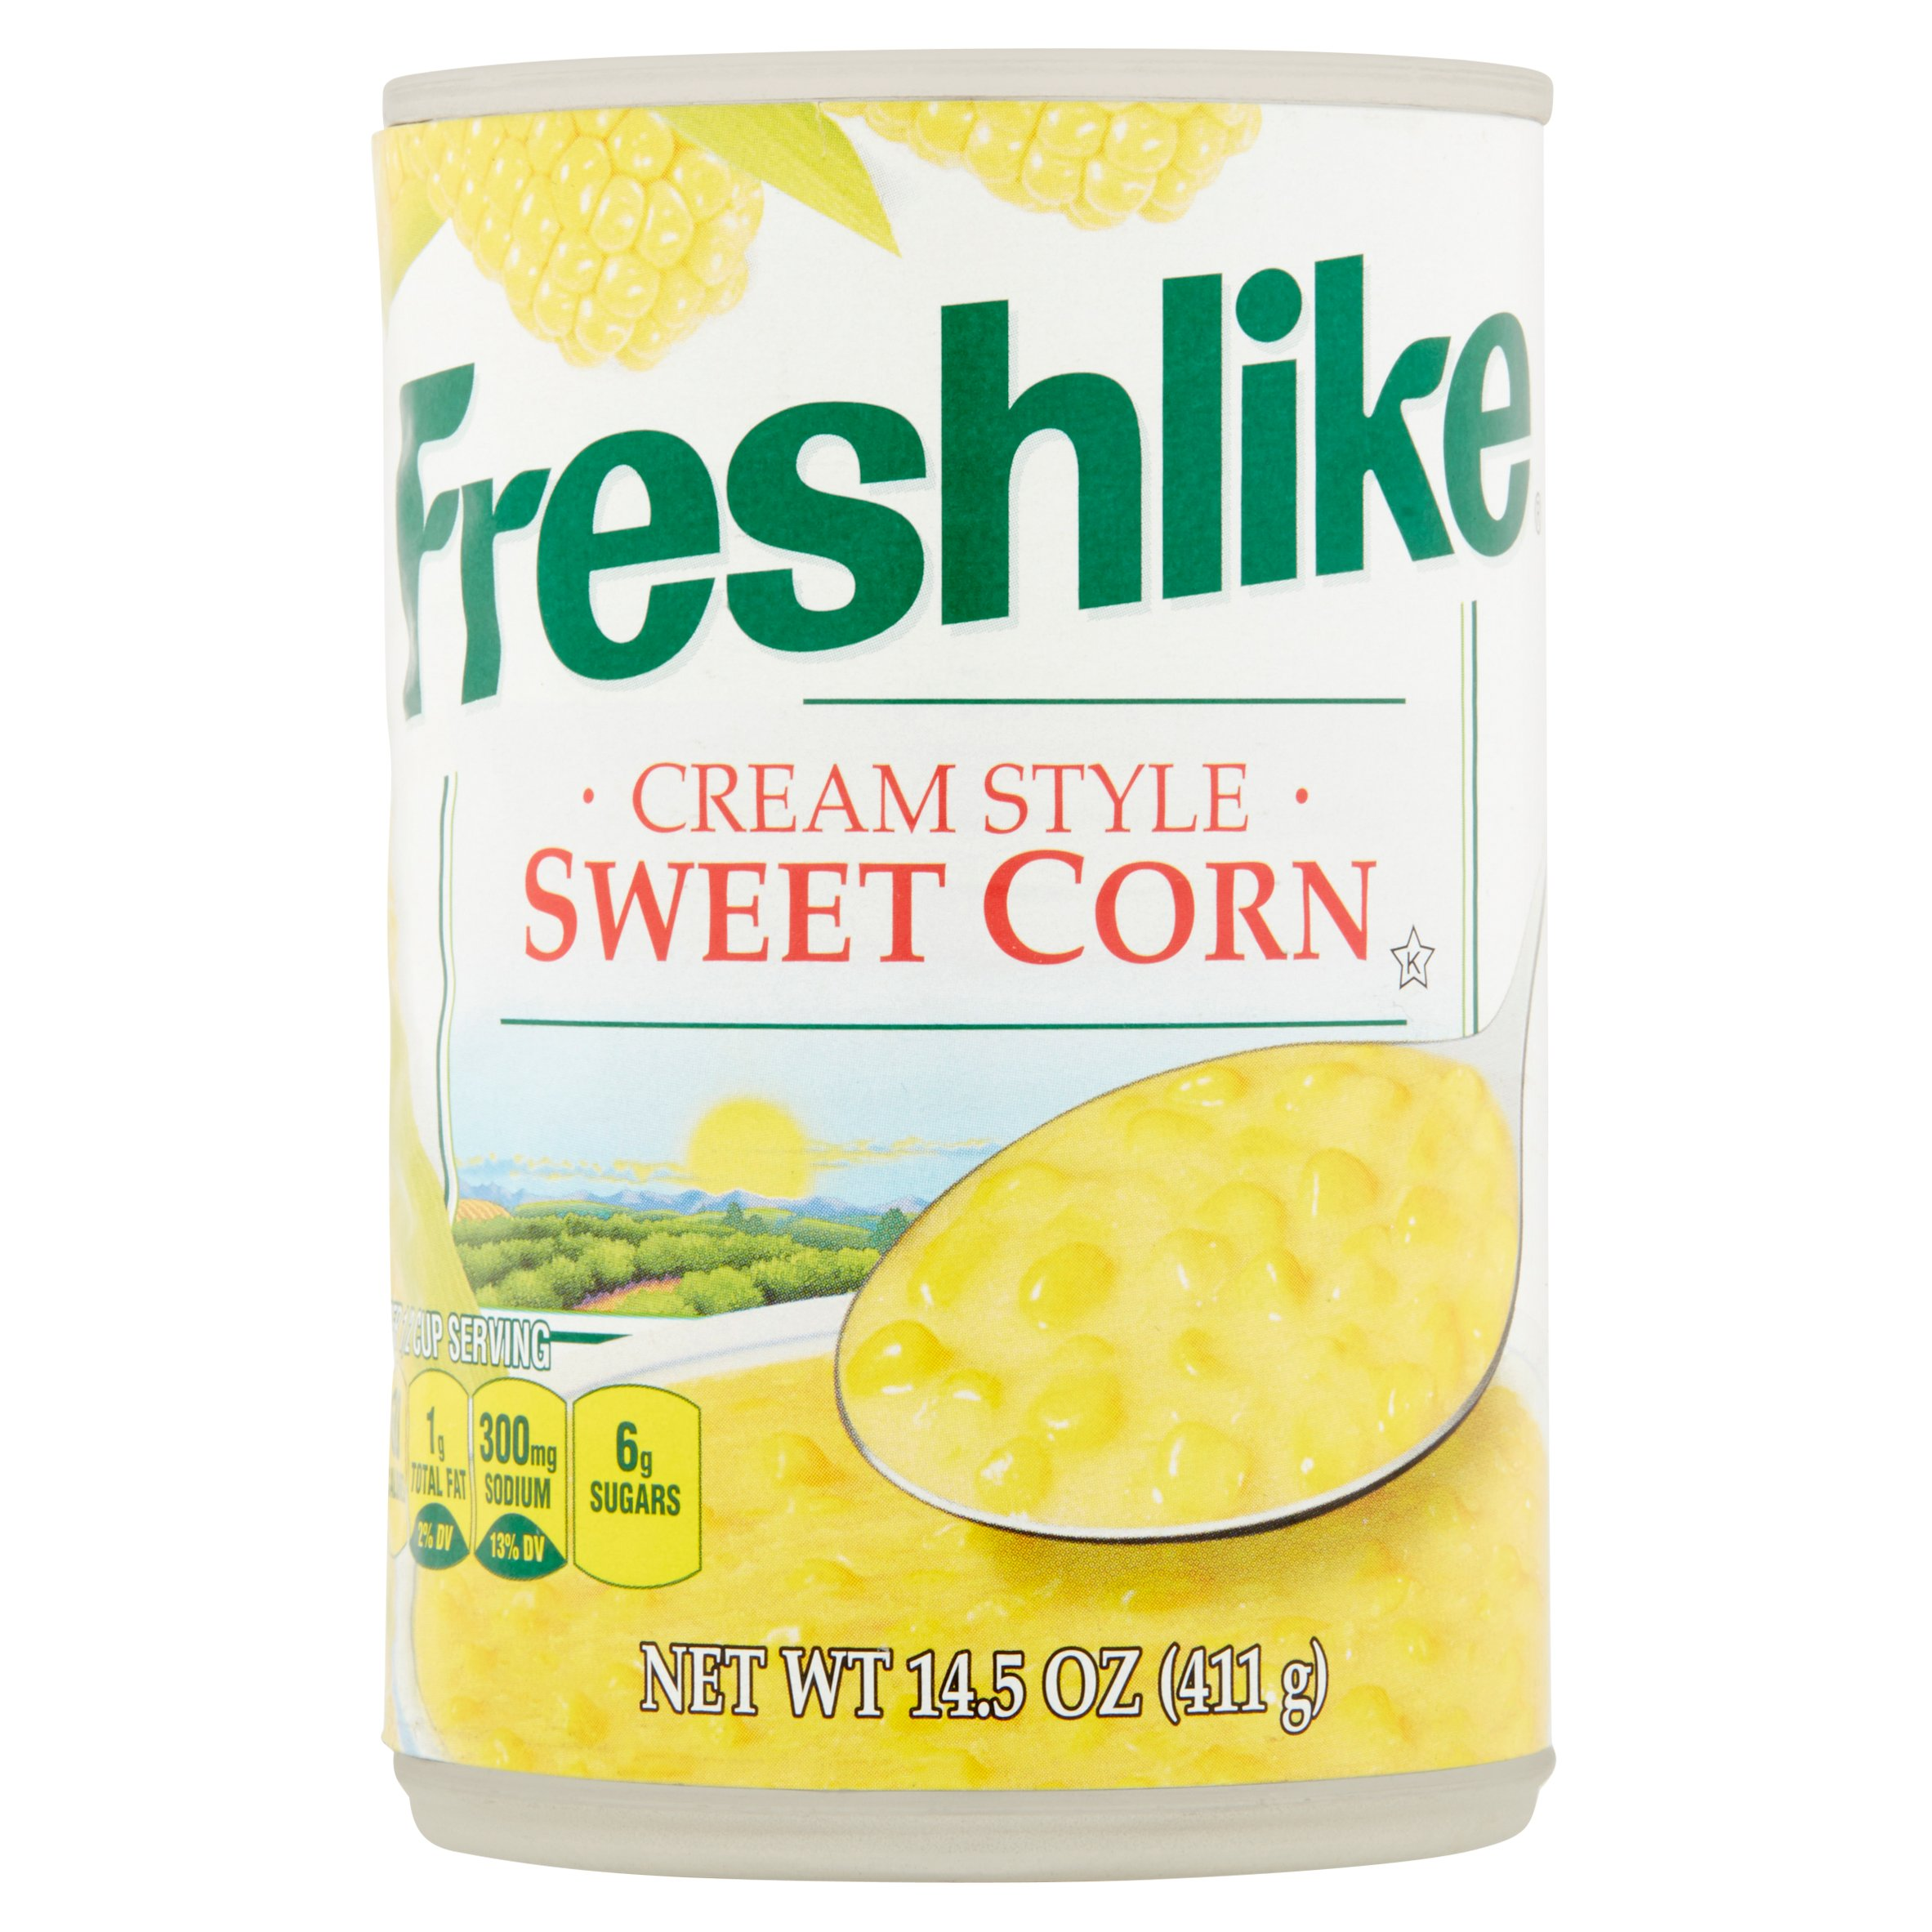 Freshlike Cream Style Sweet Corn, 14.5 oz